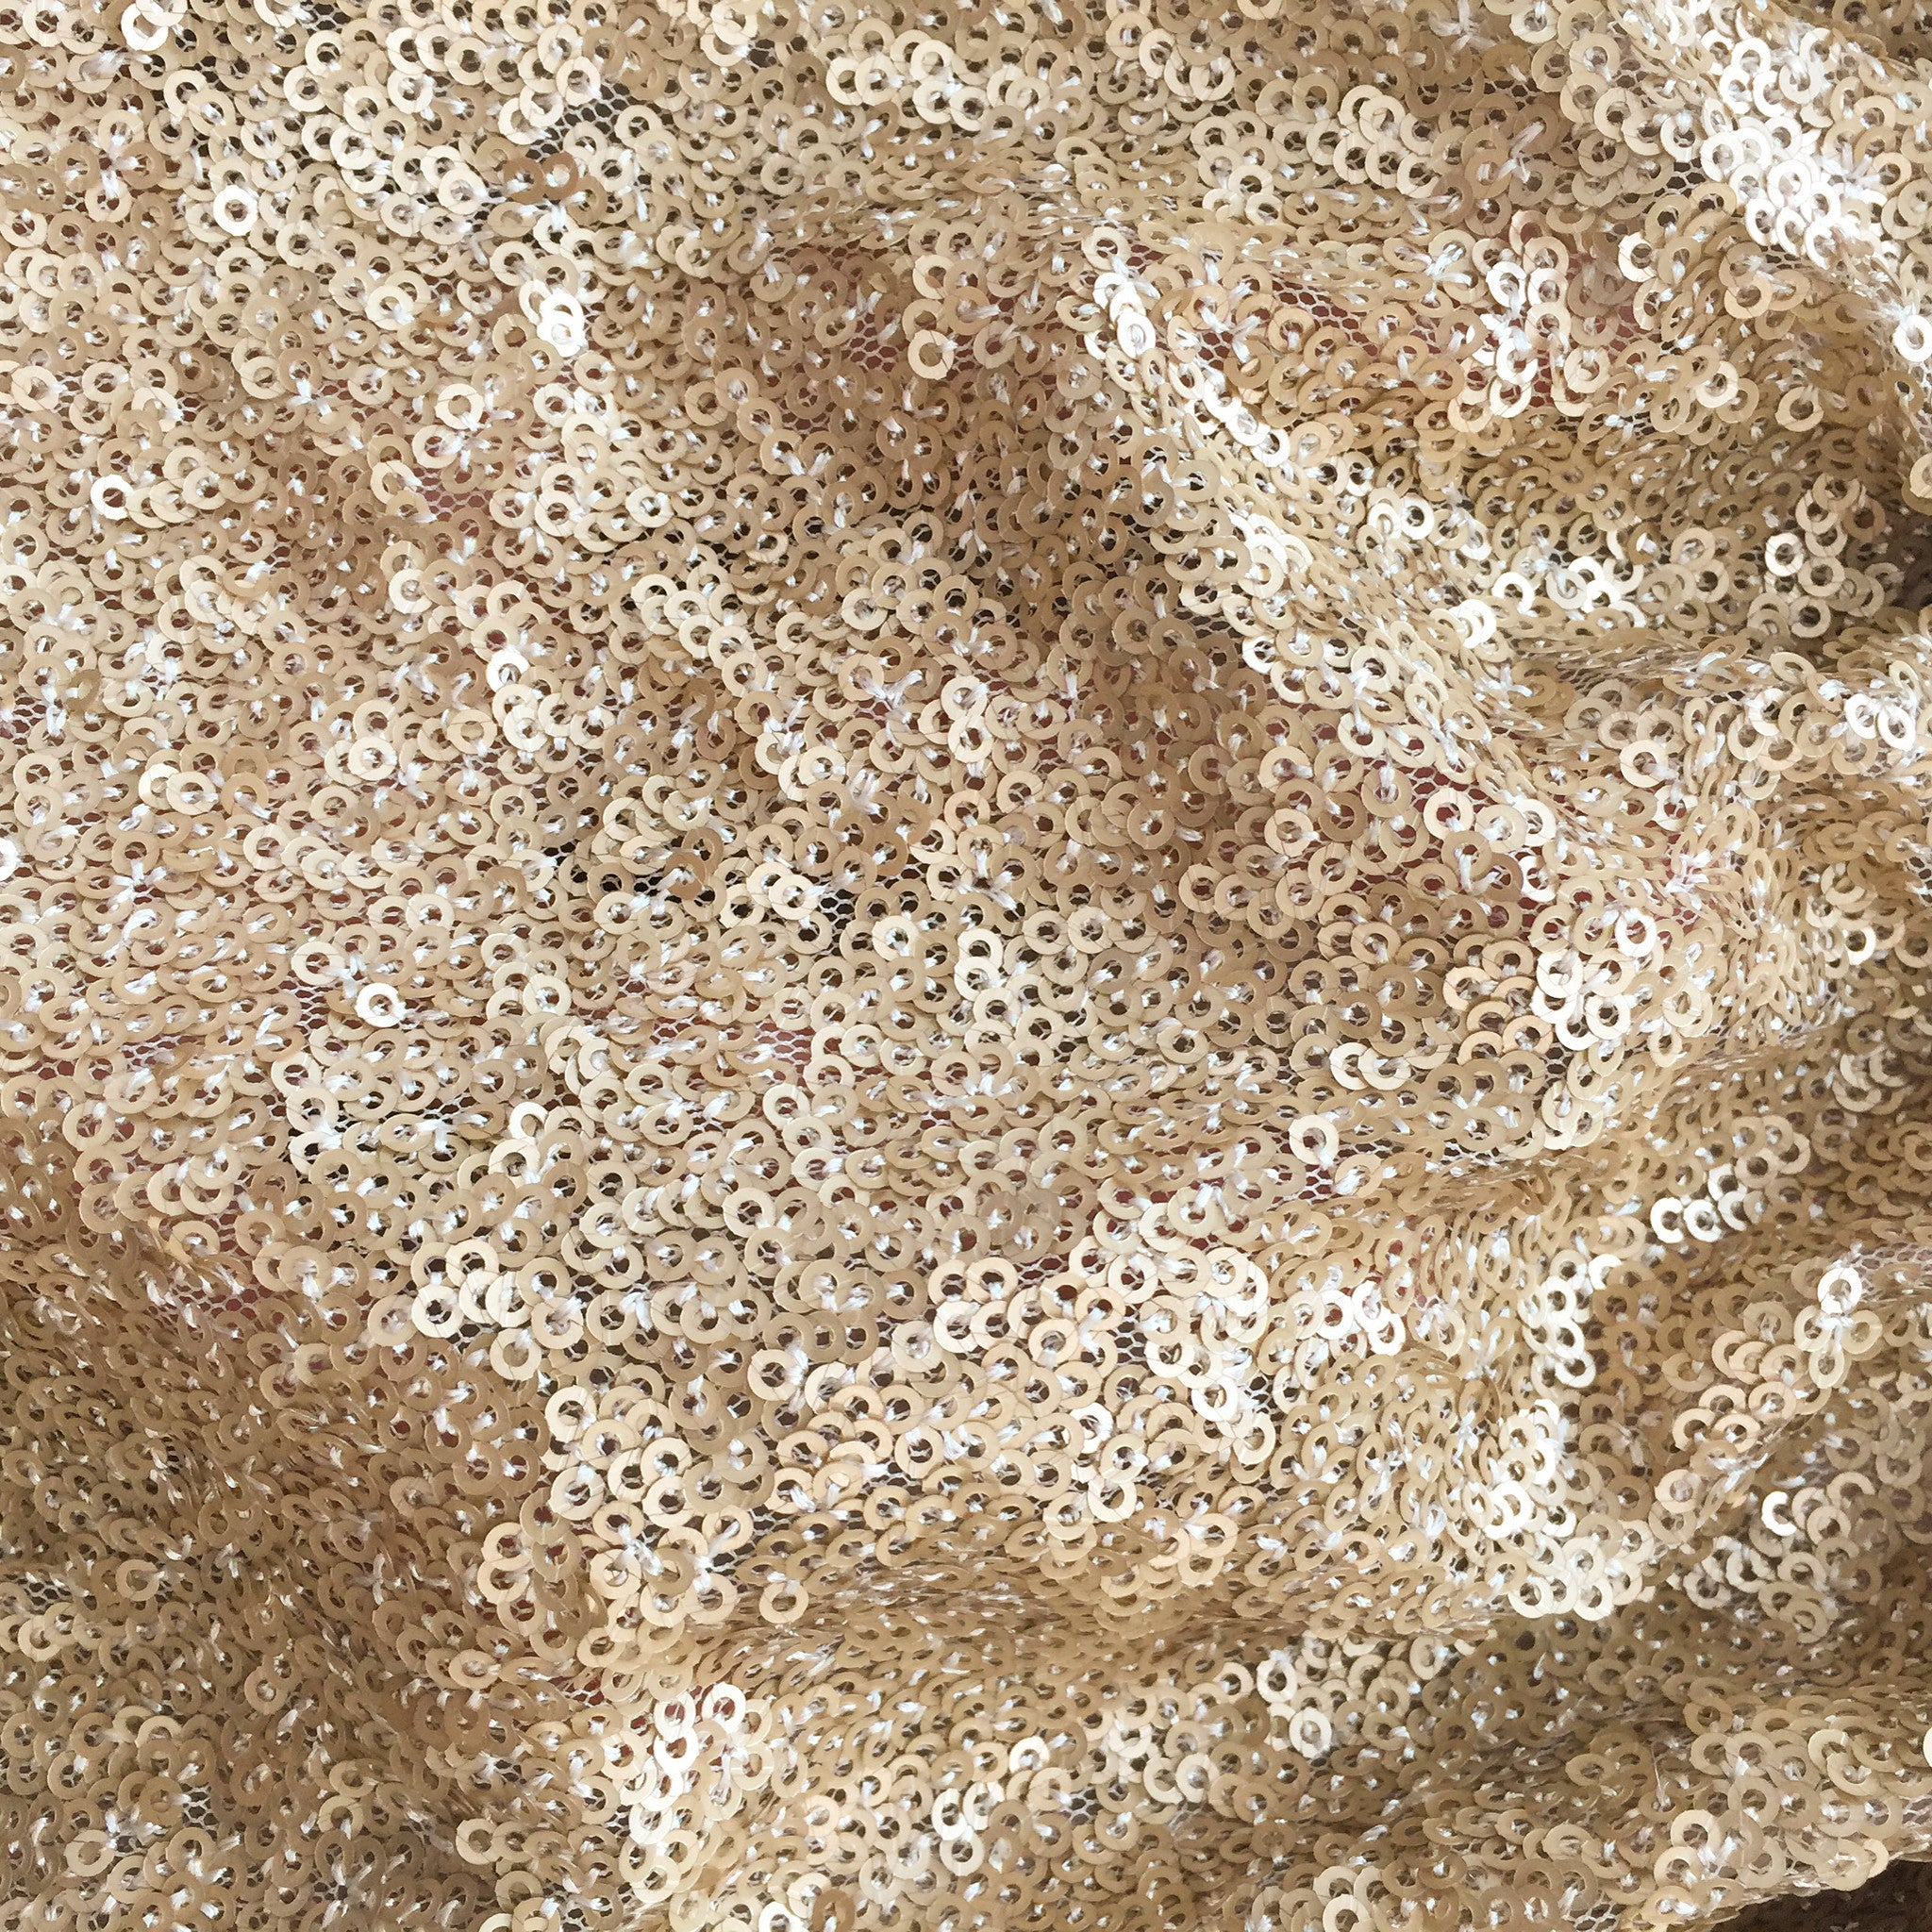 Z_fairy dust sequined Skirt - Glittery Gold (6/12m) - SOLD OUT